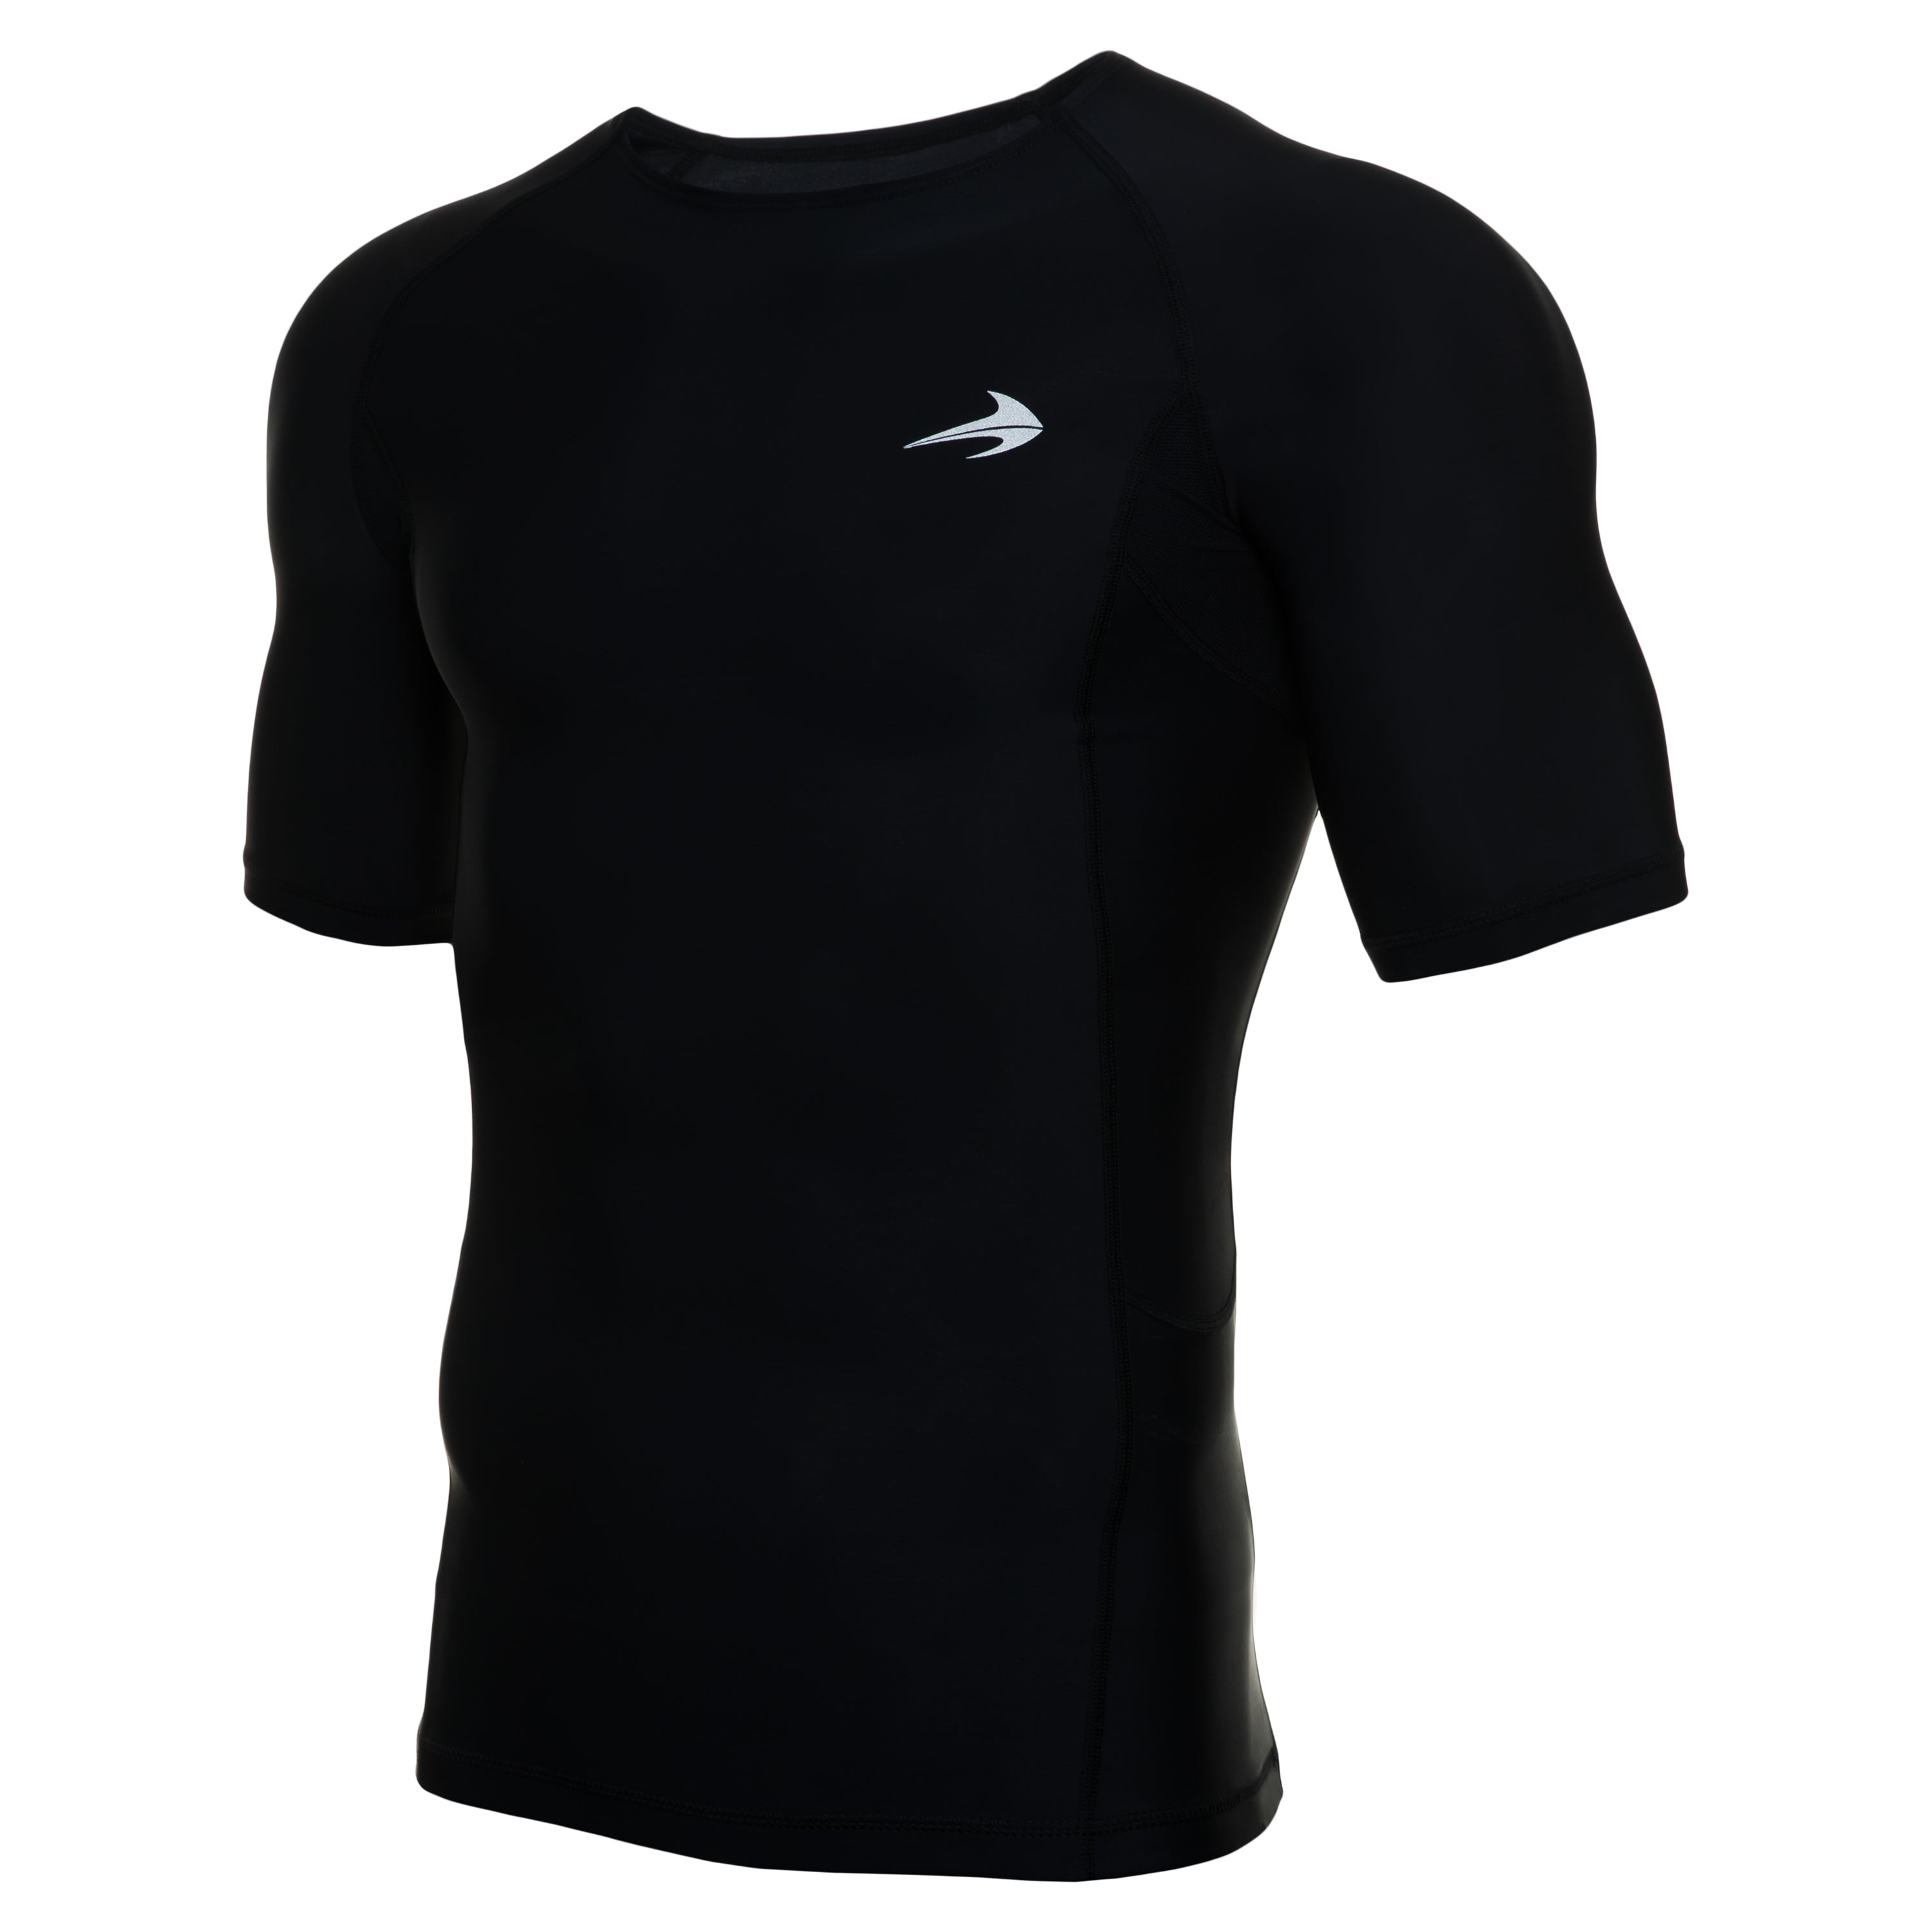 Men's Compression Short Sleeve Shirt - Black